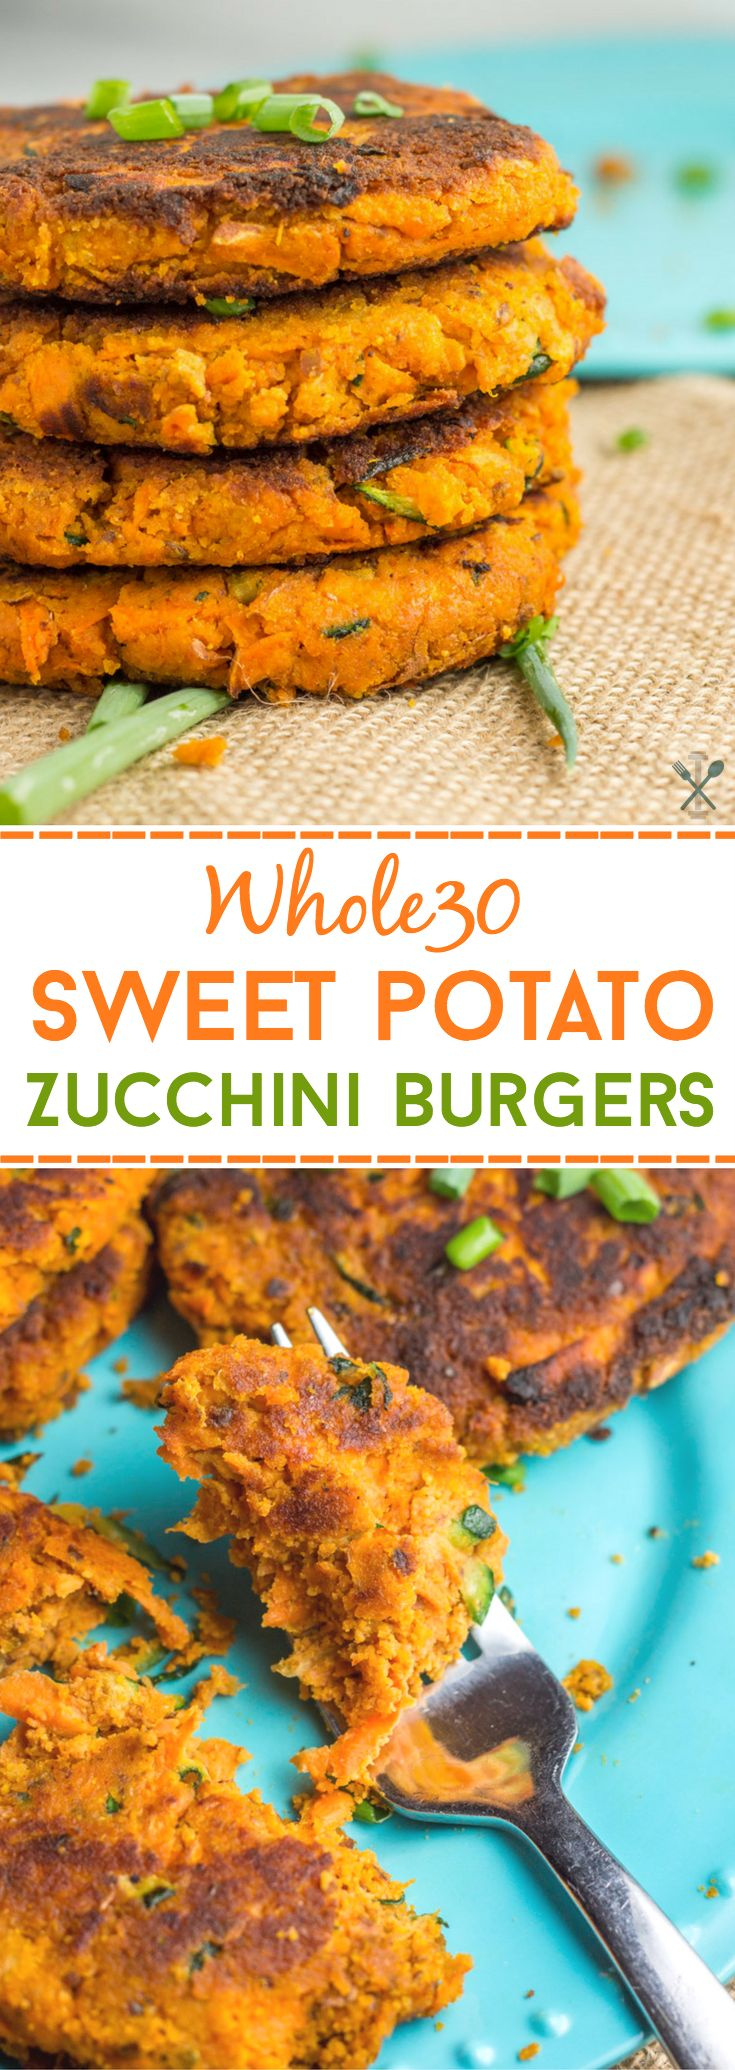 Whole30 compliant, gluten free sweet potato burgers with zucchini.